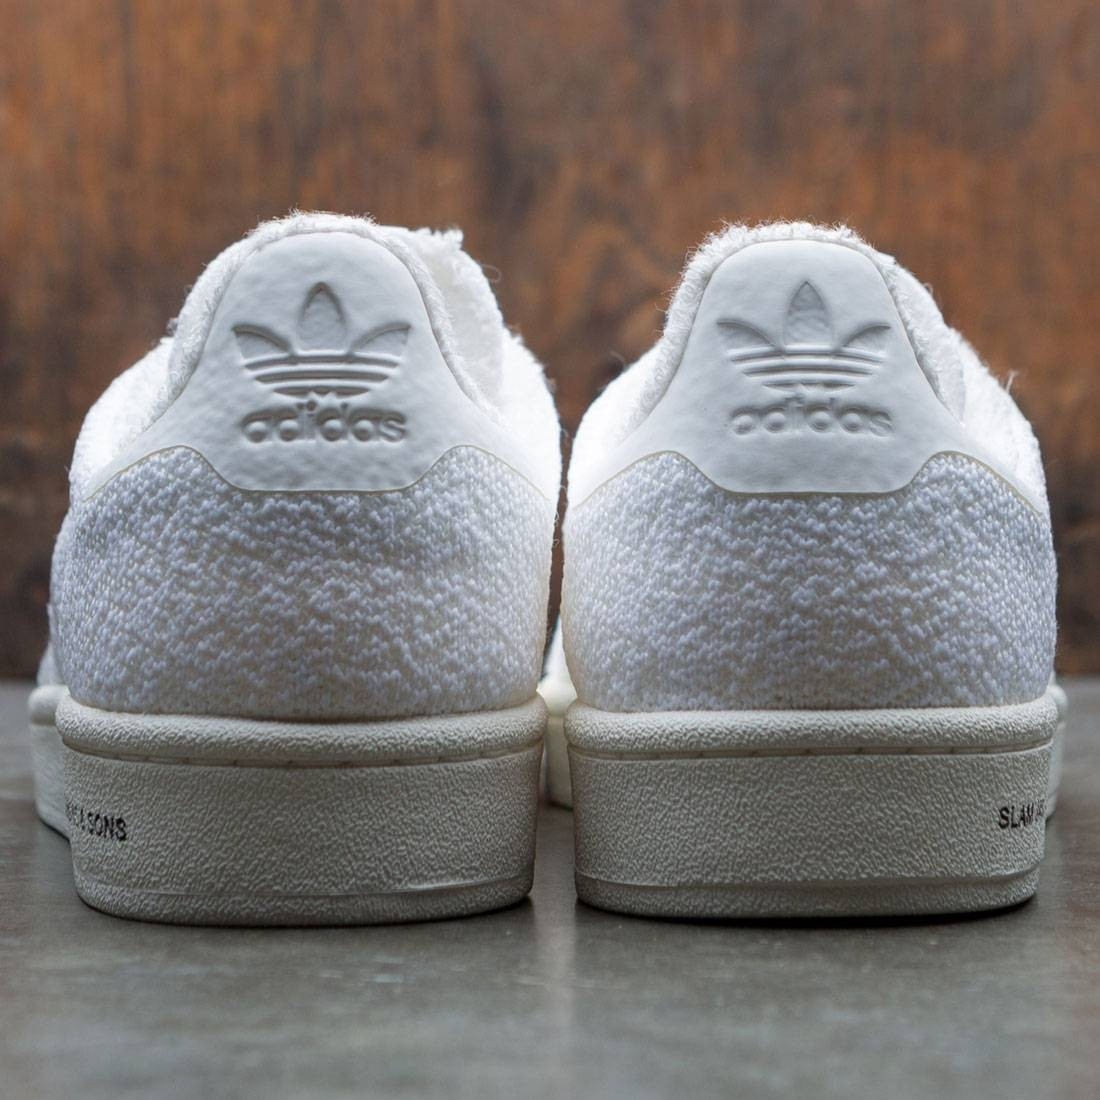 3f2a967ba946 Adidas Consortium x United Arrows And Sons x Slam Jam Men Campus Sneaker  Exchange (white   footwear white   chalk white)